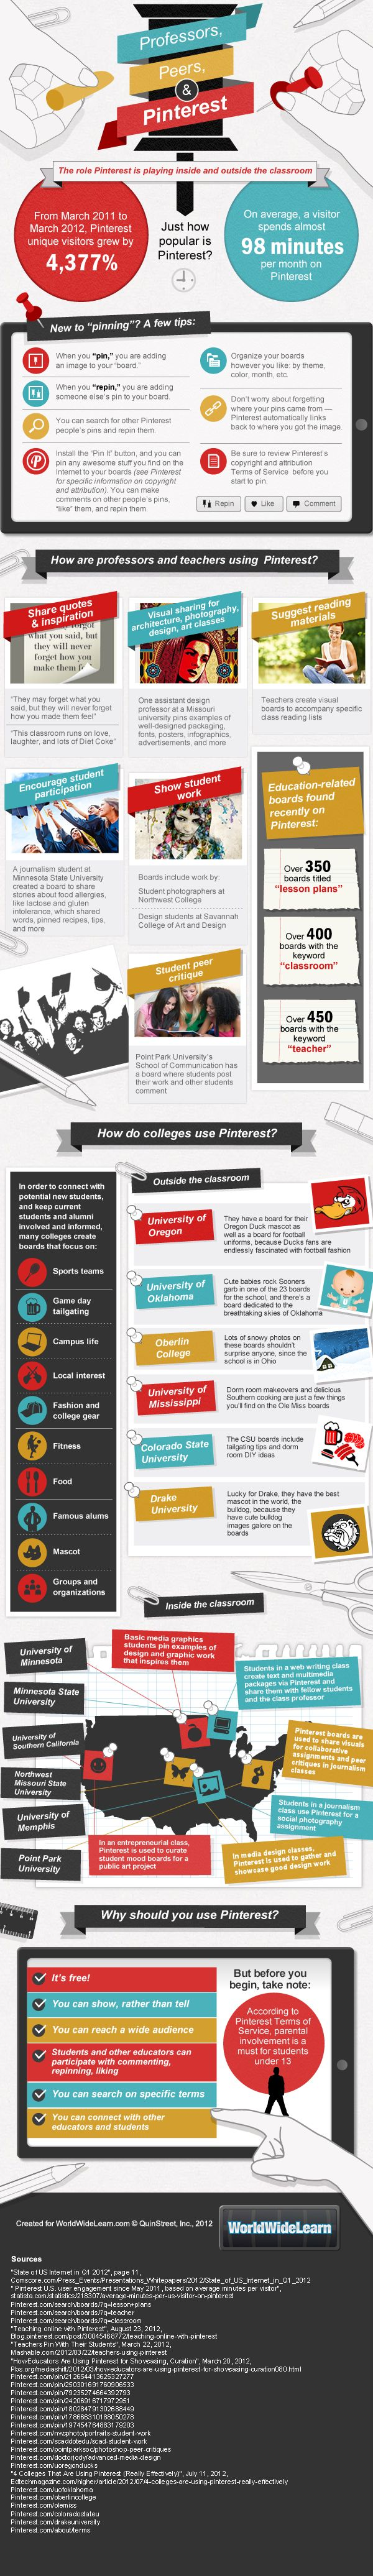 A Straightforward Guide To Using Pinterest In Education